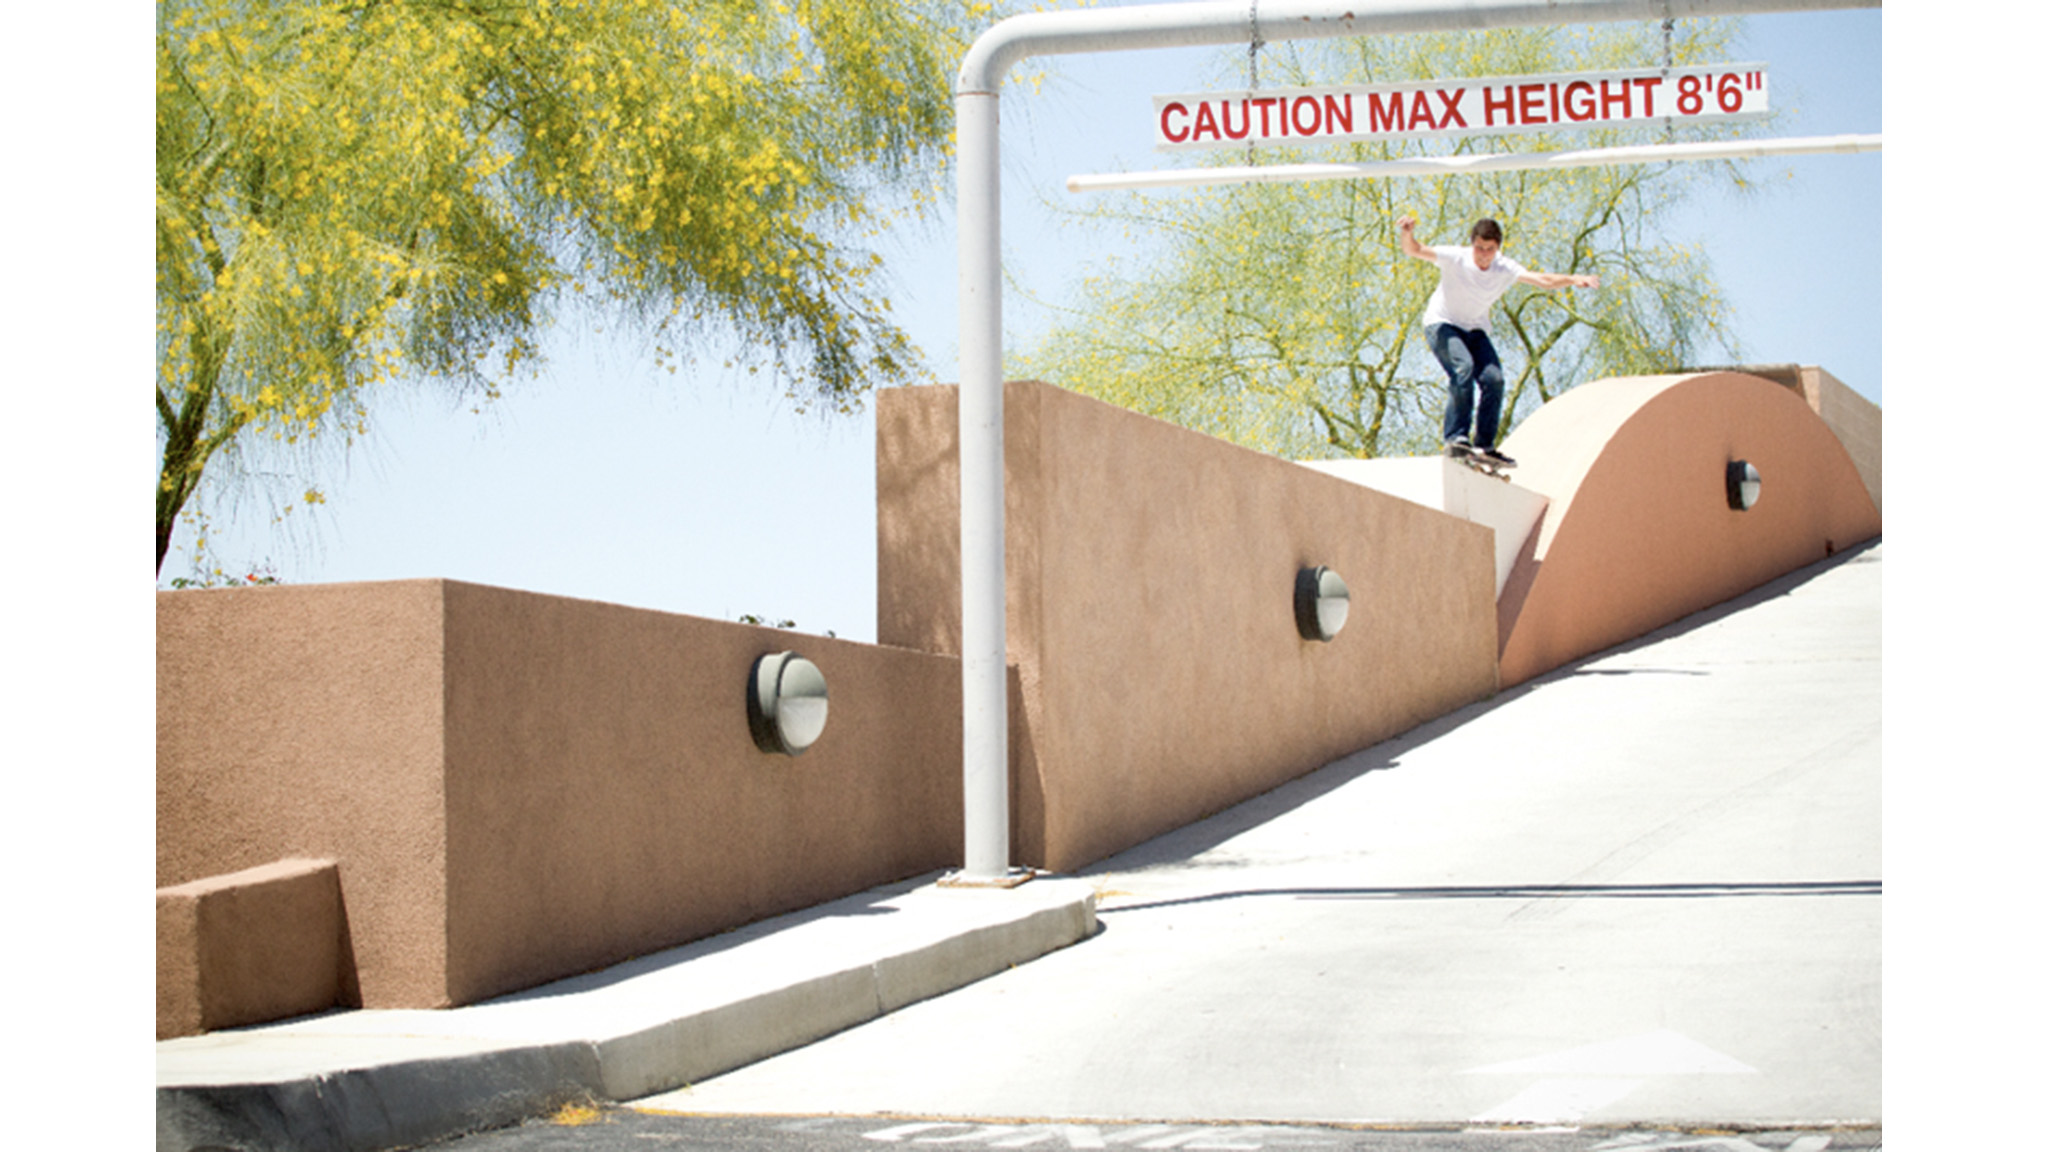 Tom Karangelov grinds a tall one in Palm Springs.